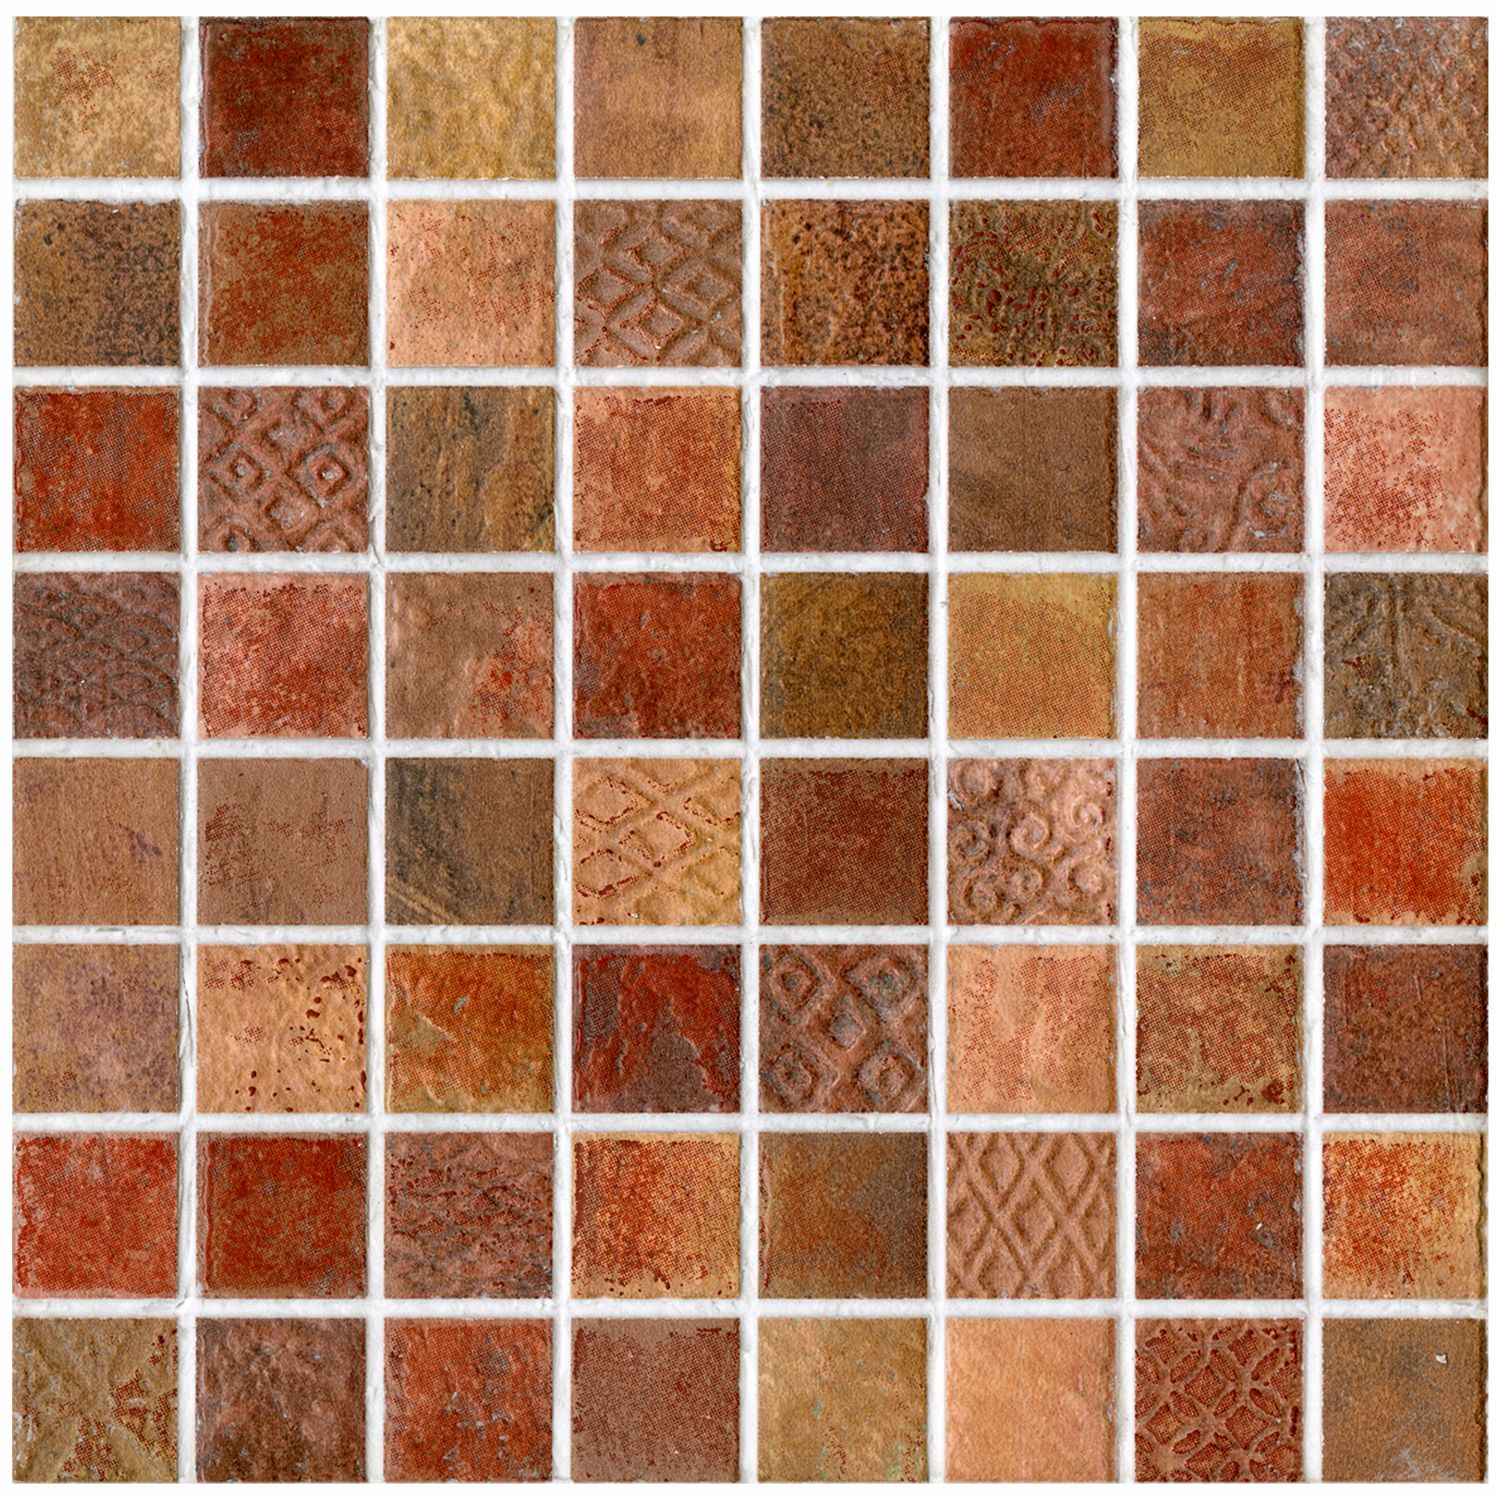 Pretty 1 Inch Ceramic Tile Small 24X24 Floor Tile Square 2X4 Acoustical Ceiling Tiles 4 X 6 Subway Tile Young 4X4 Ceramic Tiles Coloured4X8 Subway Tile SomerTile 7.75x7.75 Inch Montage Valise 1 Decor Ceramic Wall Tiles ..